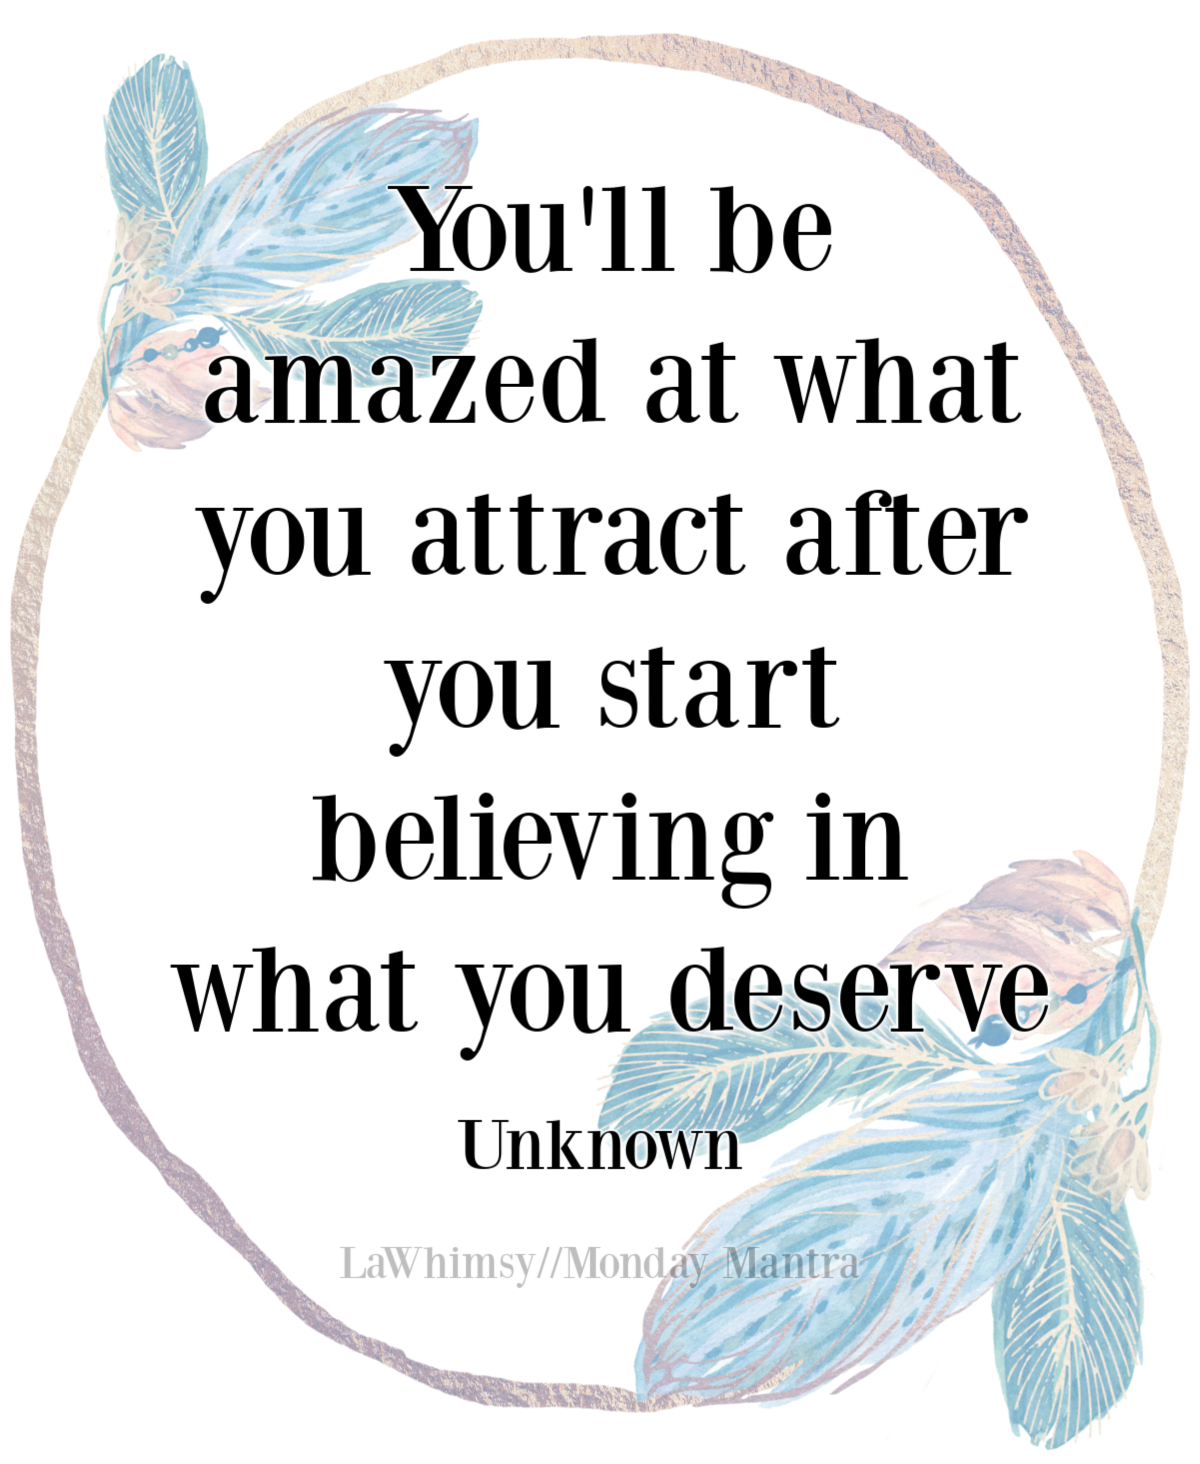 You'll be amazed at what you attract after you start believing in what you deserve quote Monday Mantra 292 via LaWhimsy